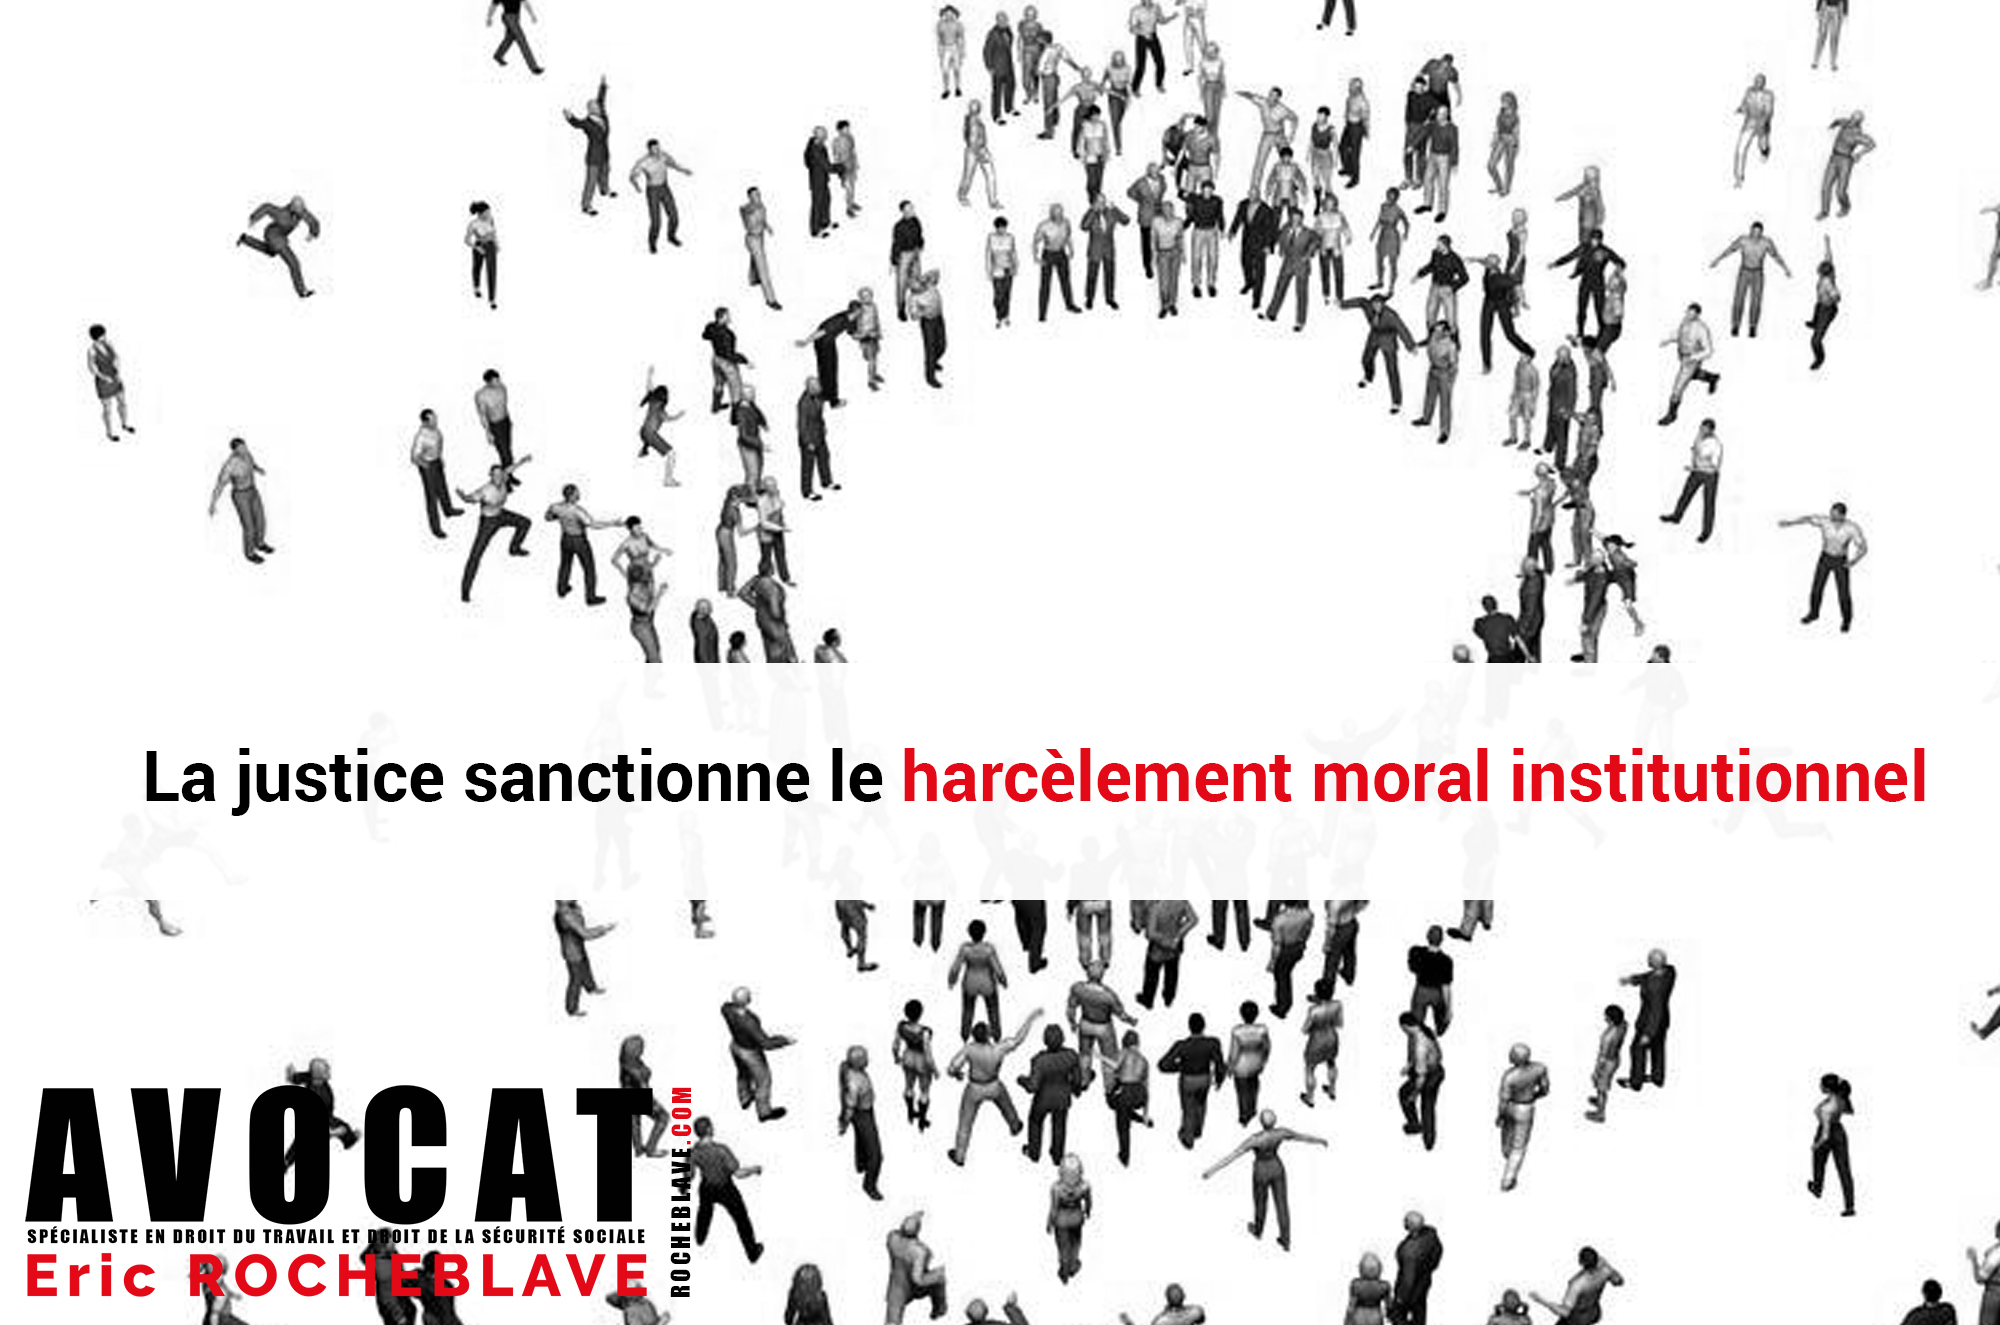 La justice sanctionne le harcèlement moral institutionnel